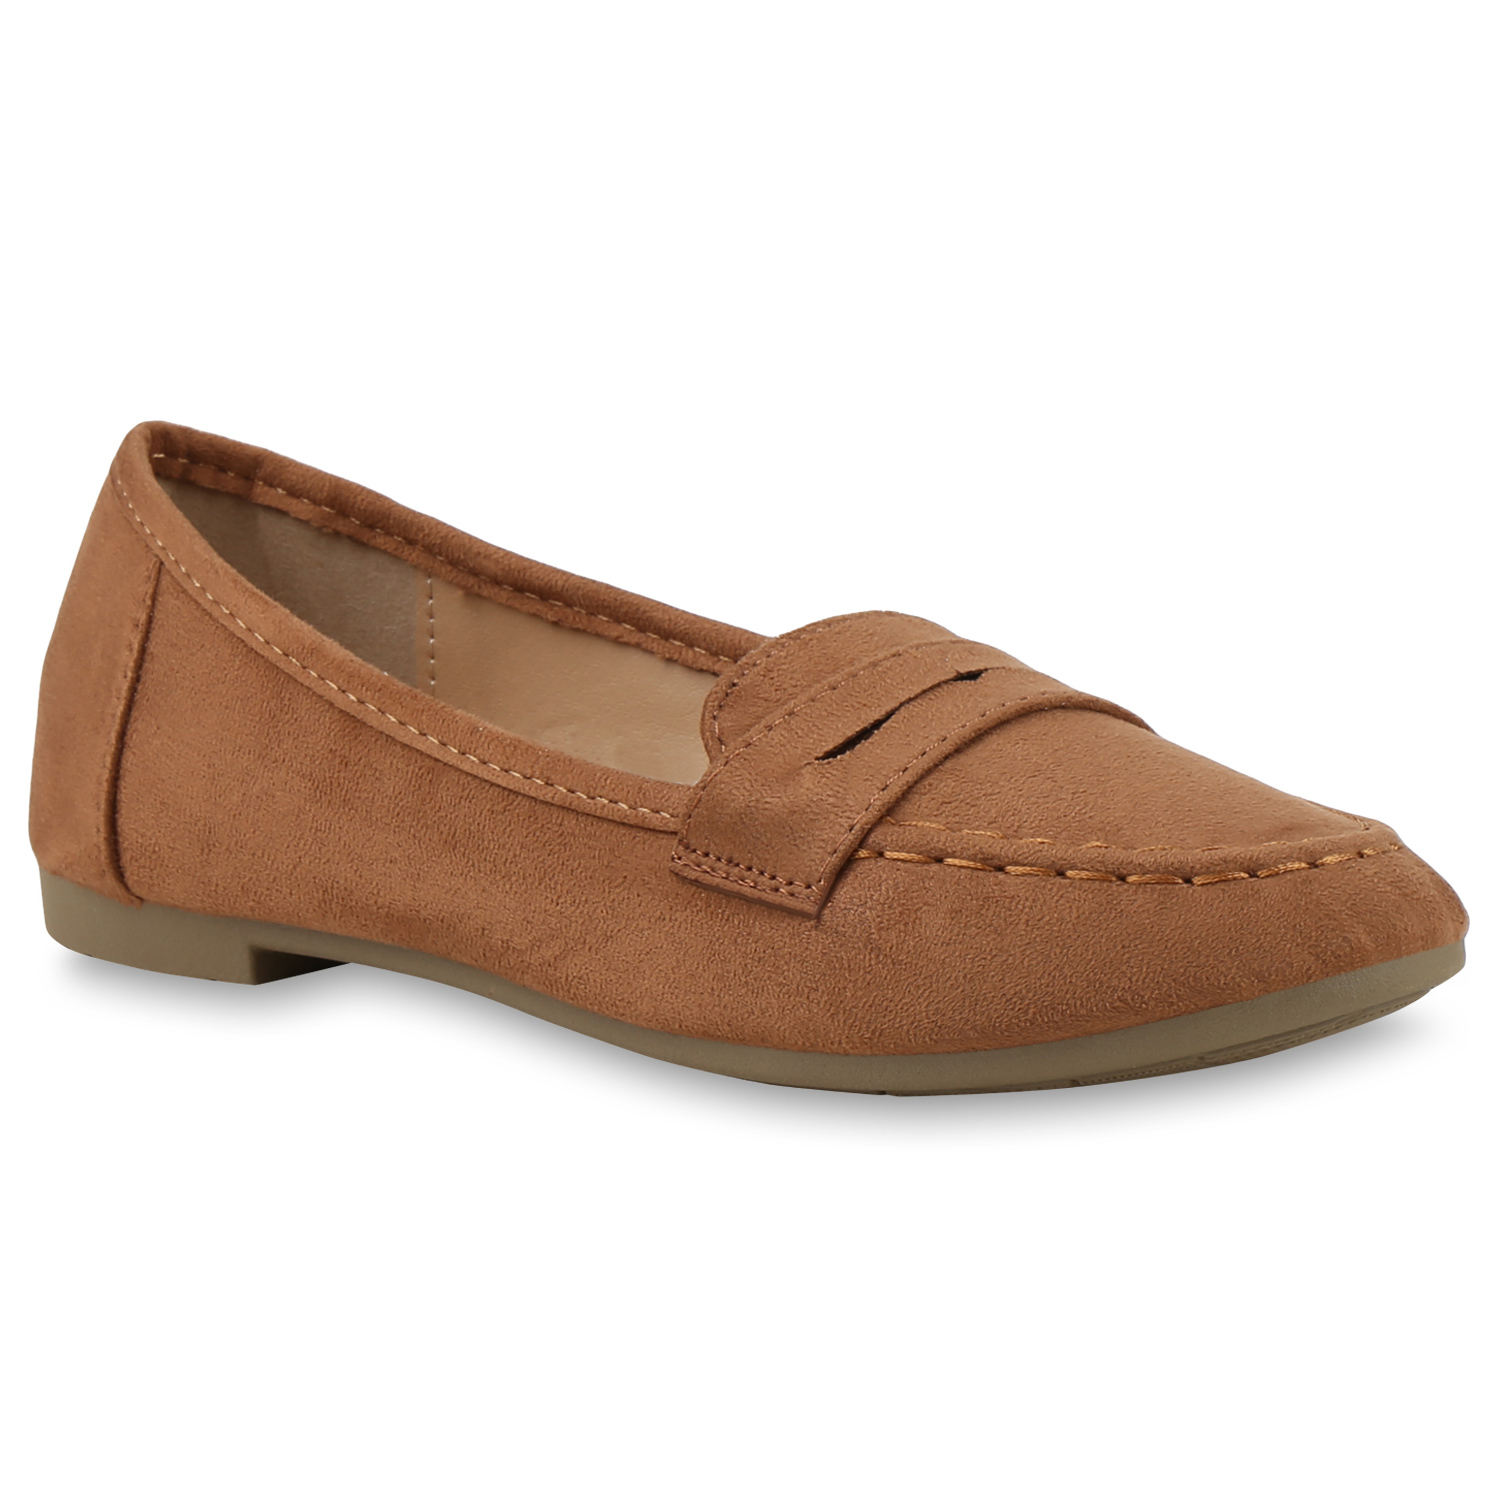 Damen Slippers Loafers - Hellbraun